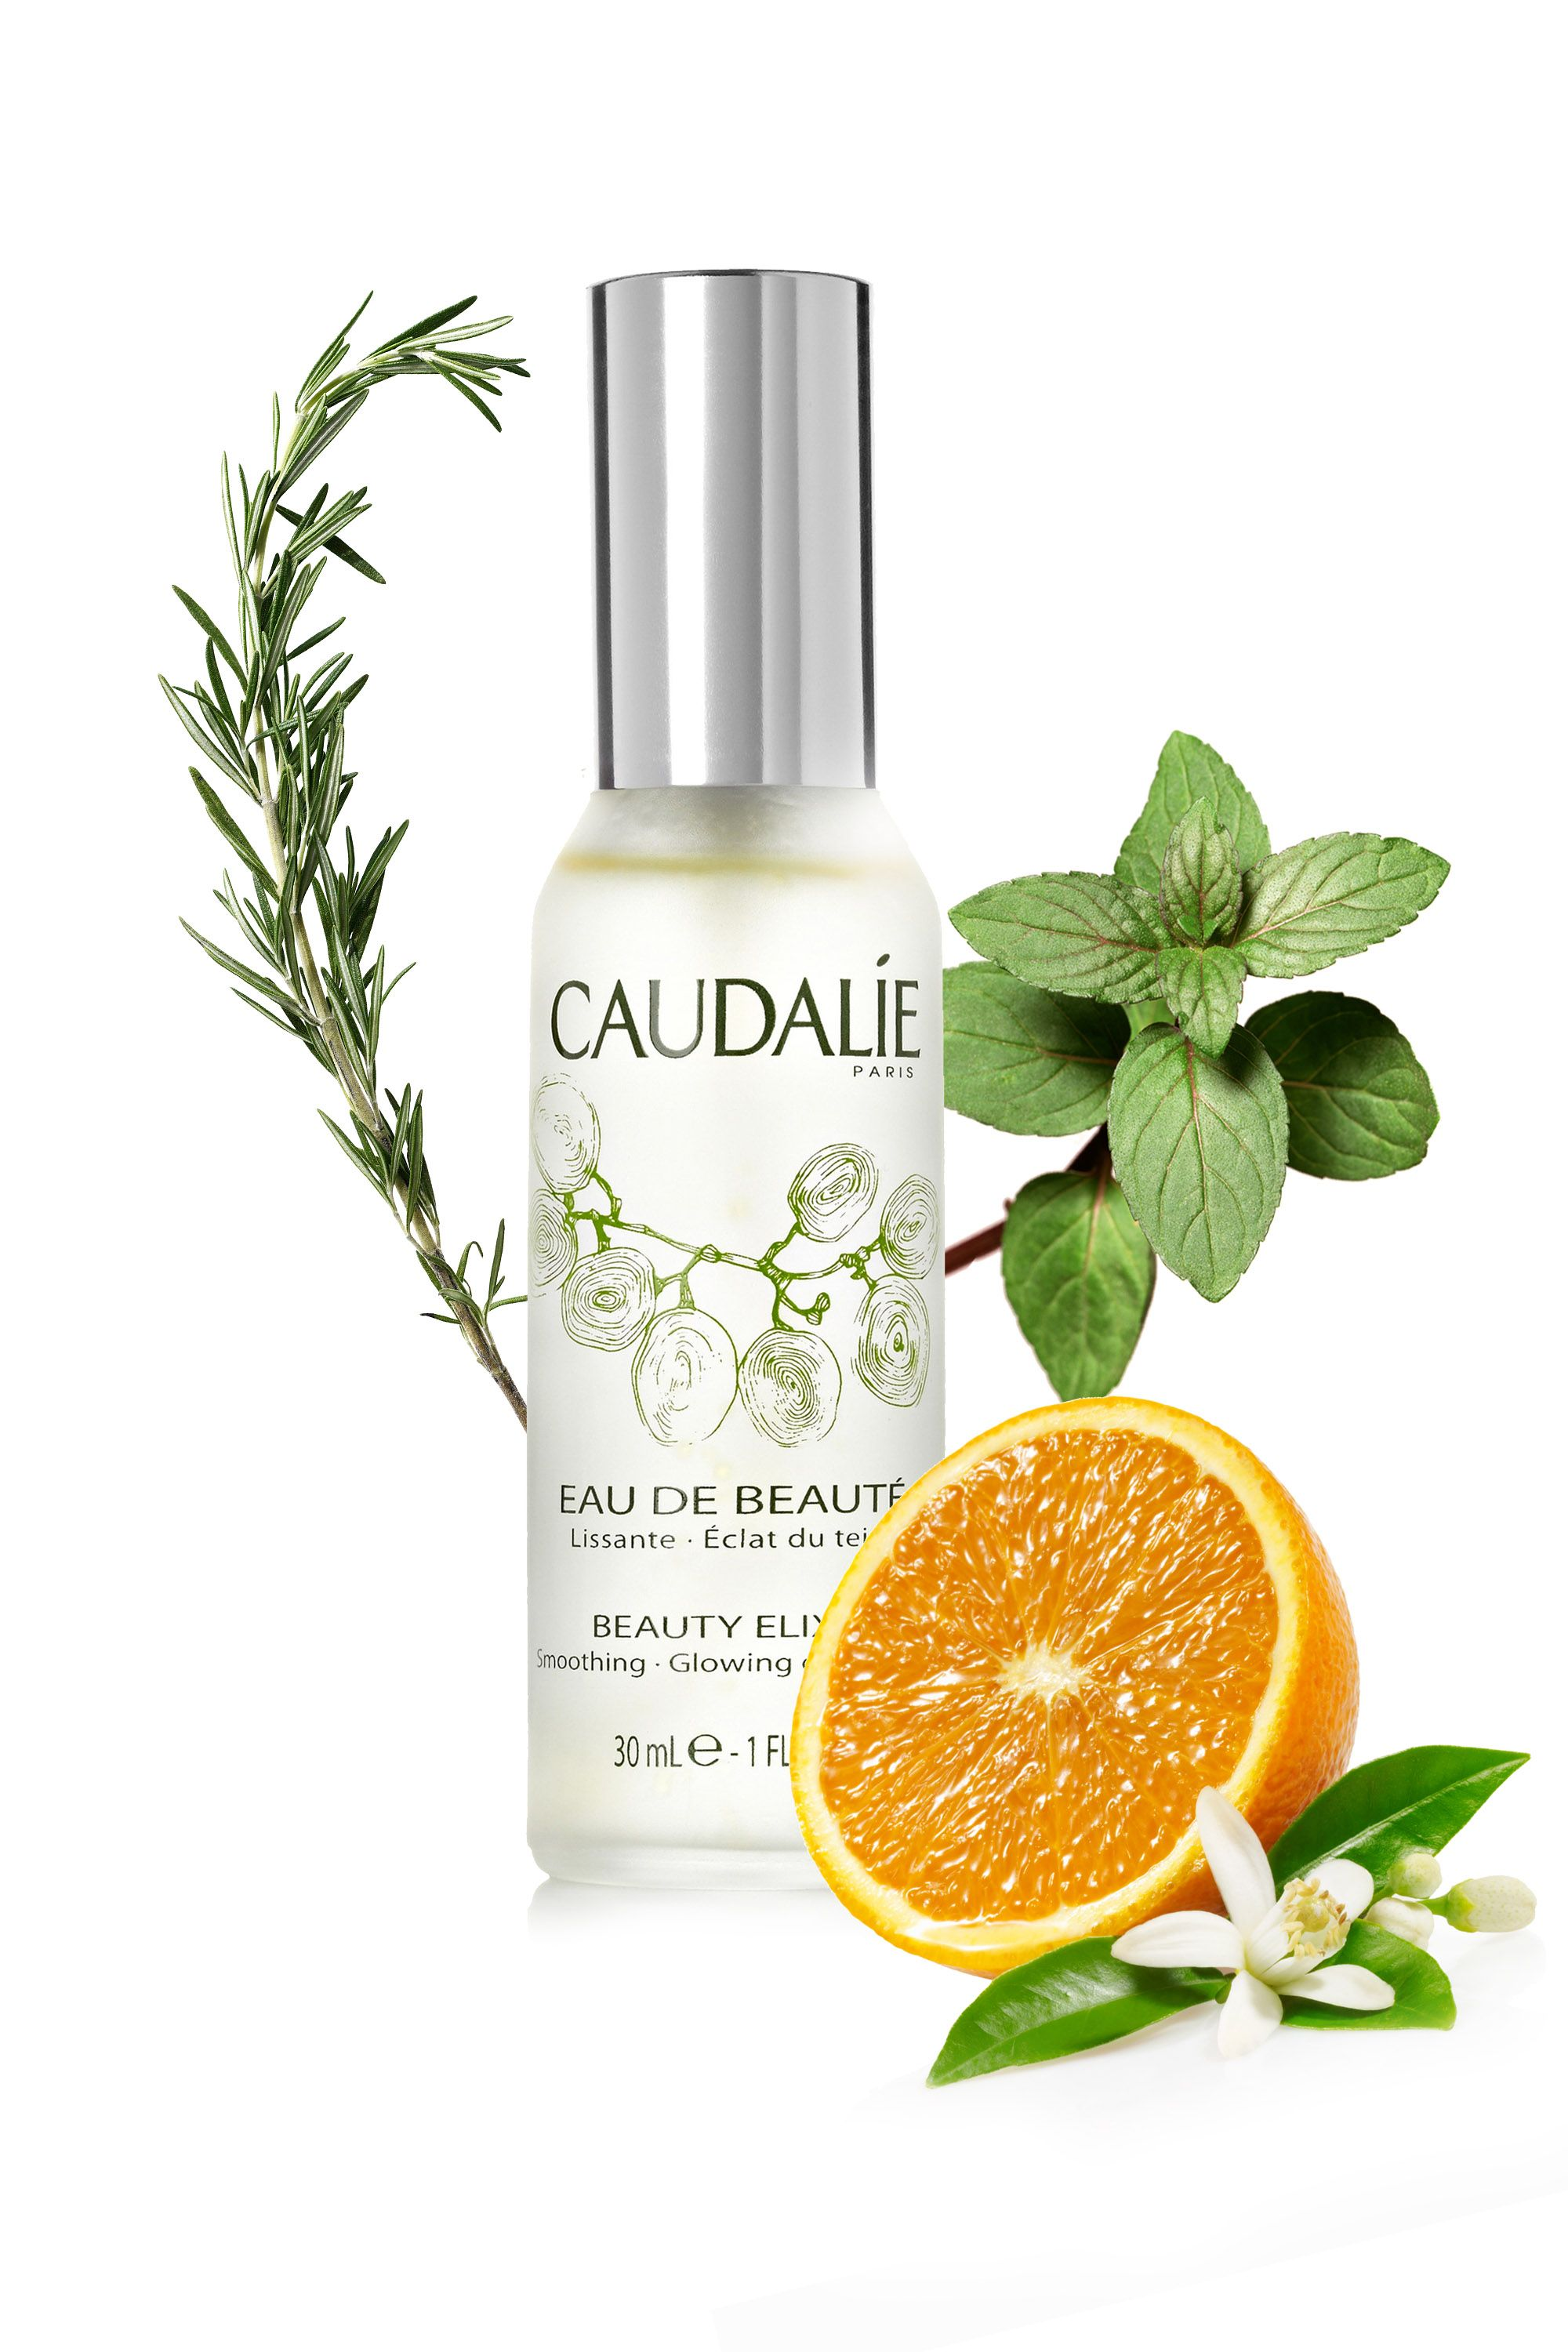 Caudalie Beauty Elixir, $49; caudalie.com  <strong>What's in it:</strong> Bitter orange, rosemary, and peppermint  <strong>For your skin:</strong> There's a reason why this product is a cult favorite for everyone from top makeup artists to Karlie Kloss: Orange normalizes sebum production, keeping oiliness in check, peppermint soothes inflammation, and rosemary is believed to encourage collagen production. That's the trifecta, <em>non</em>?  <strong>For your mood:</strong> The scent of orange has been shown in studies to reduce anxiety, while rosemary can help boost mood and performance during a stressful day at the office. Peppermint energizes and increases alertness.